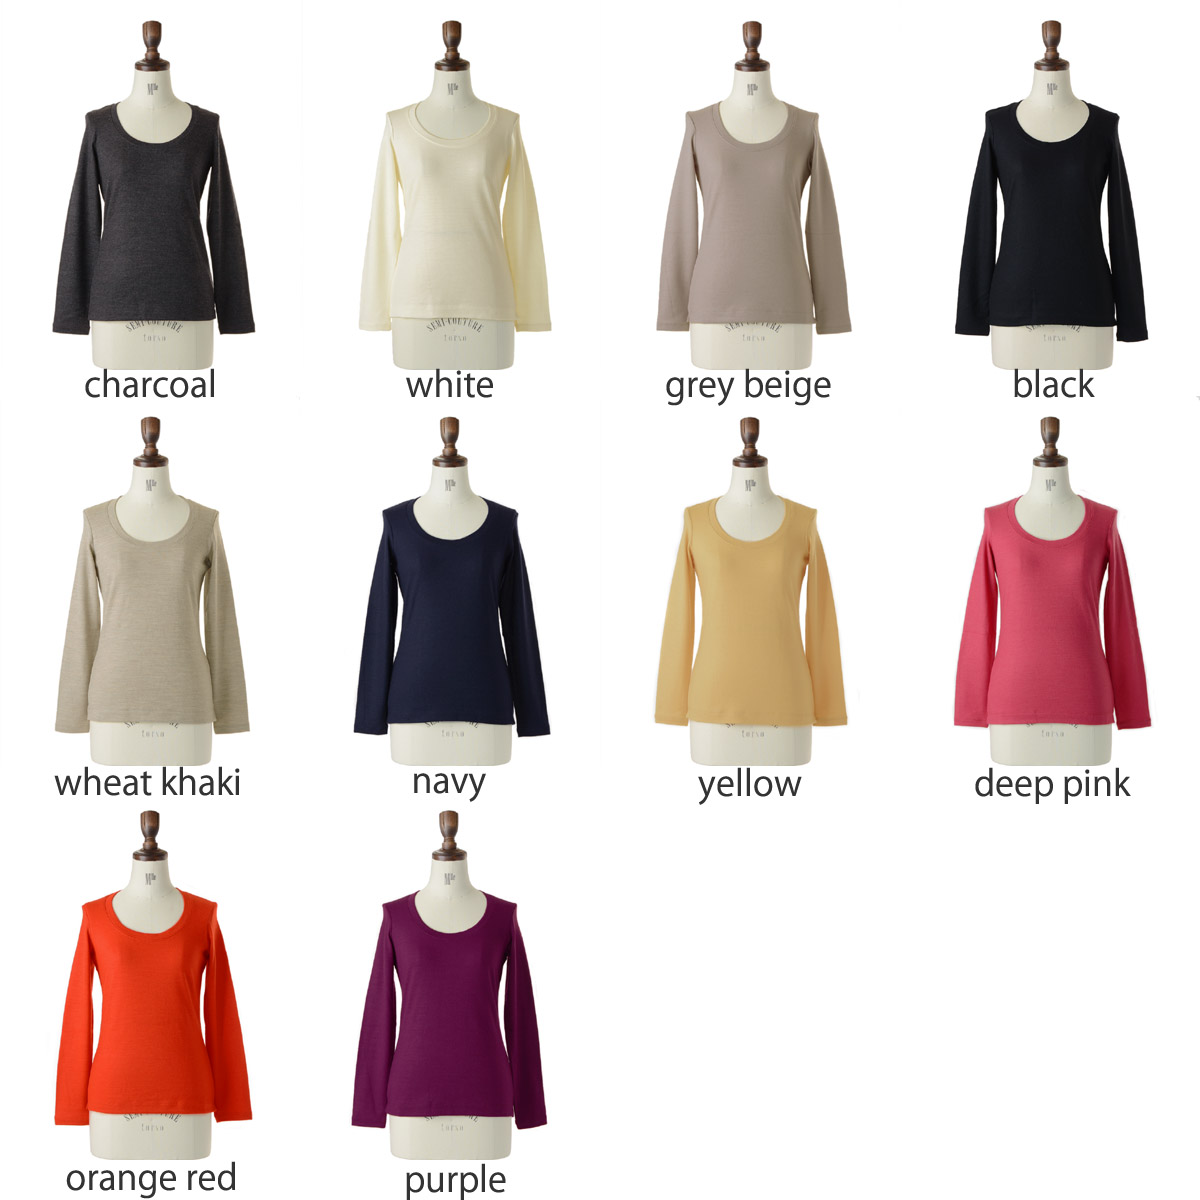 12 / 22 up to 23:59! Archipel sirene mermaid arch per sirenemermaid washable wool scoopneck pull over and mwaa5009 (10 colors) (M)